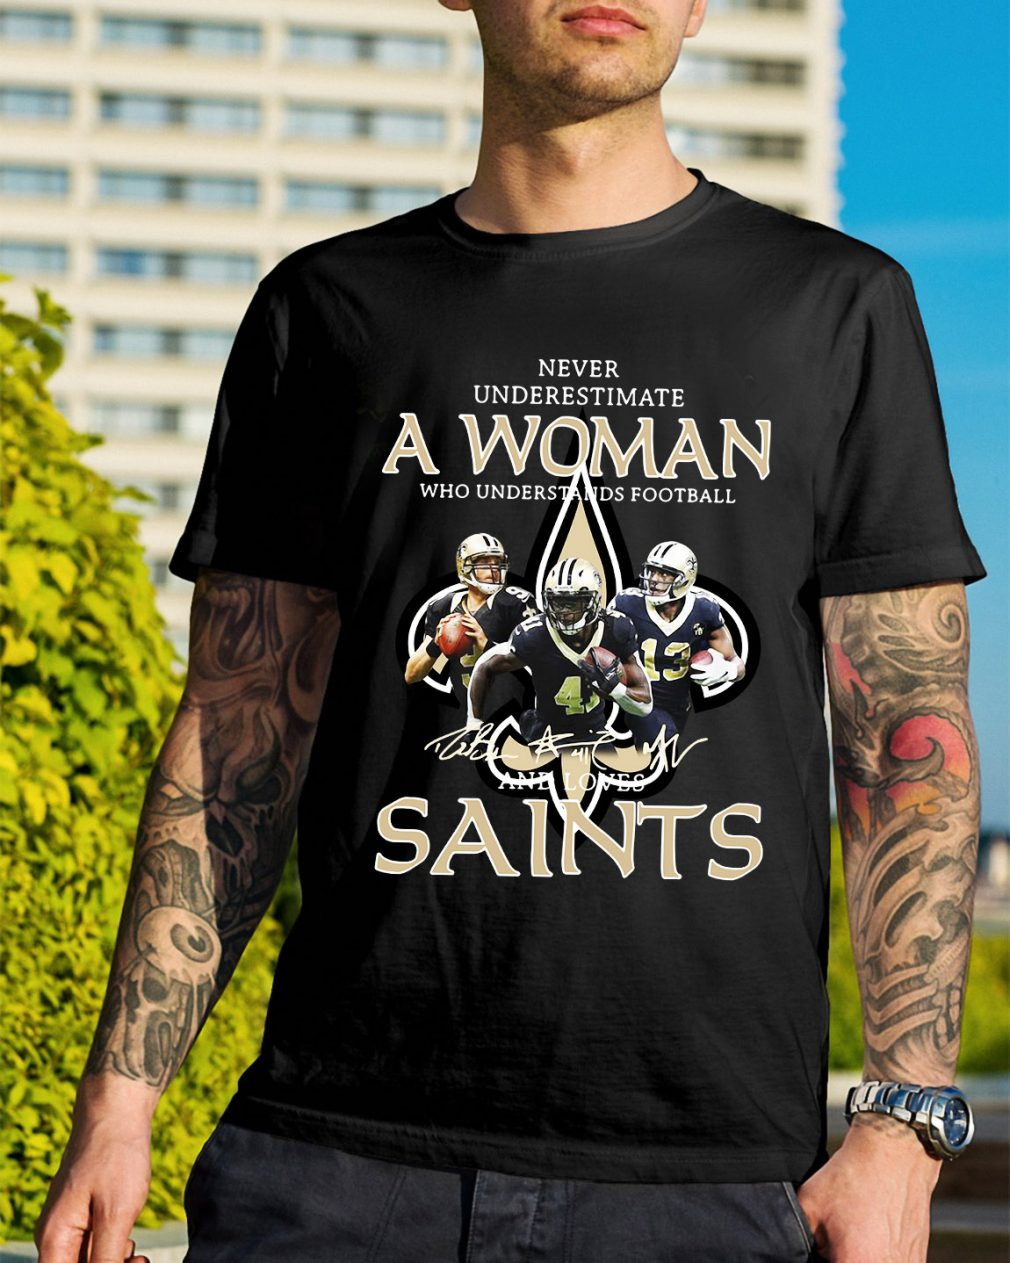 Never underestimate a woman who understands football and Saints shirt